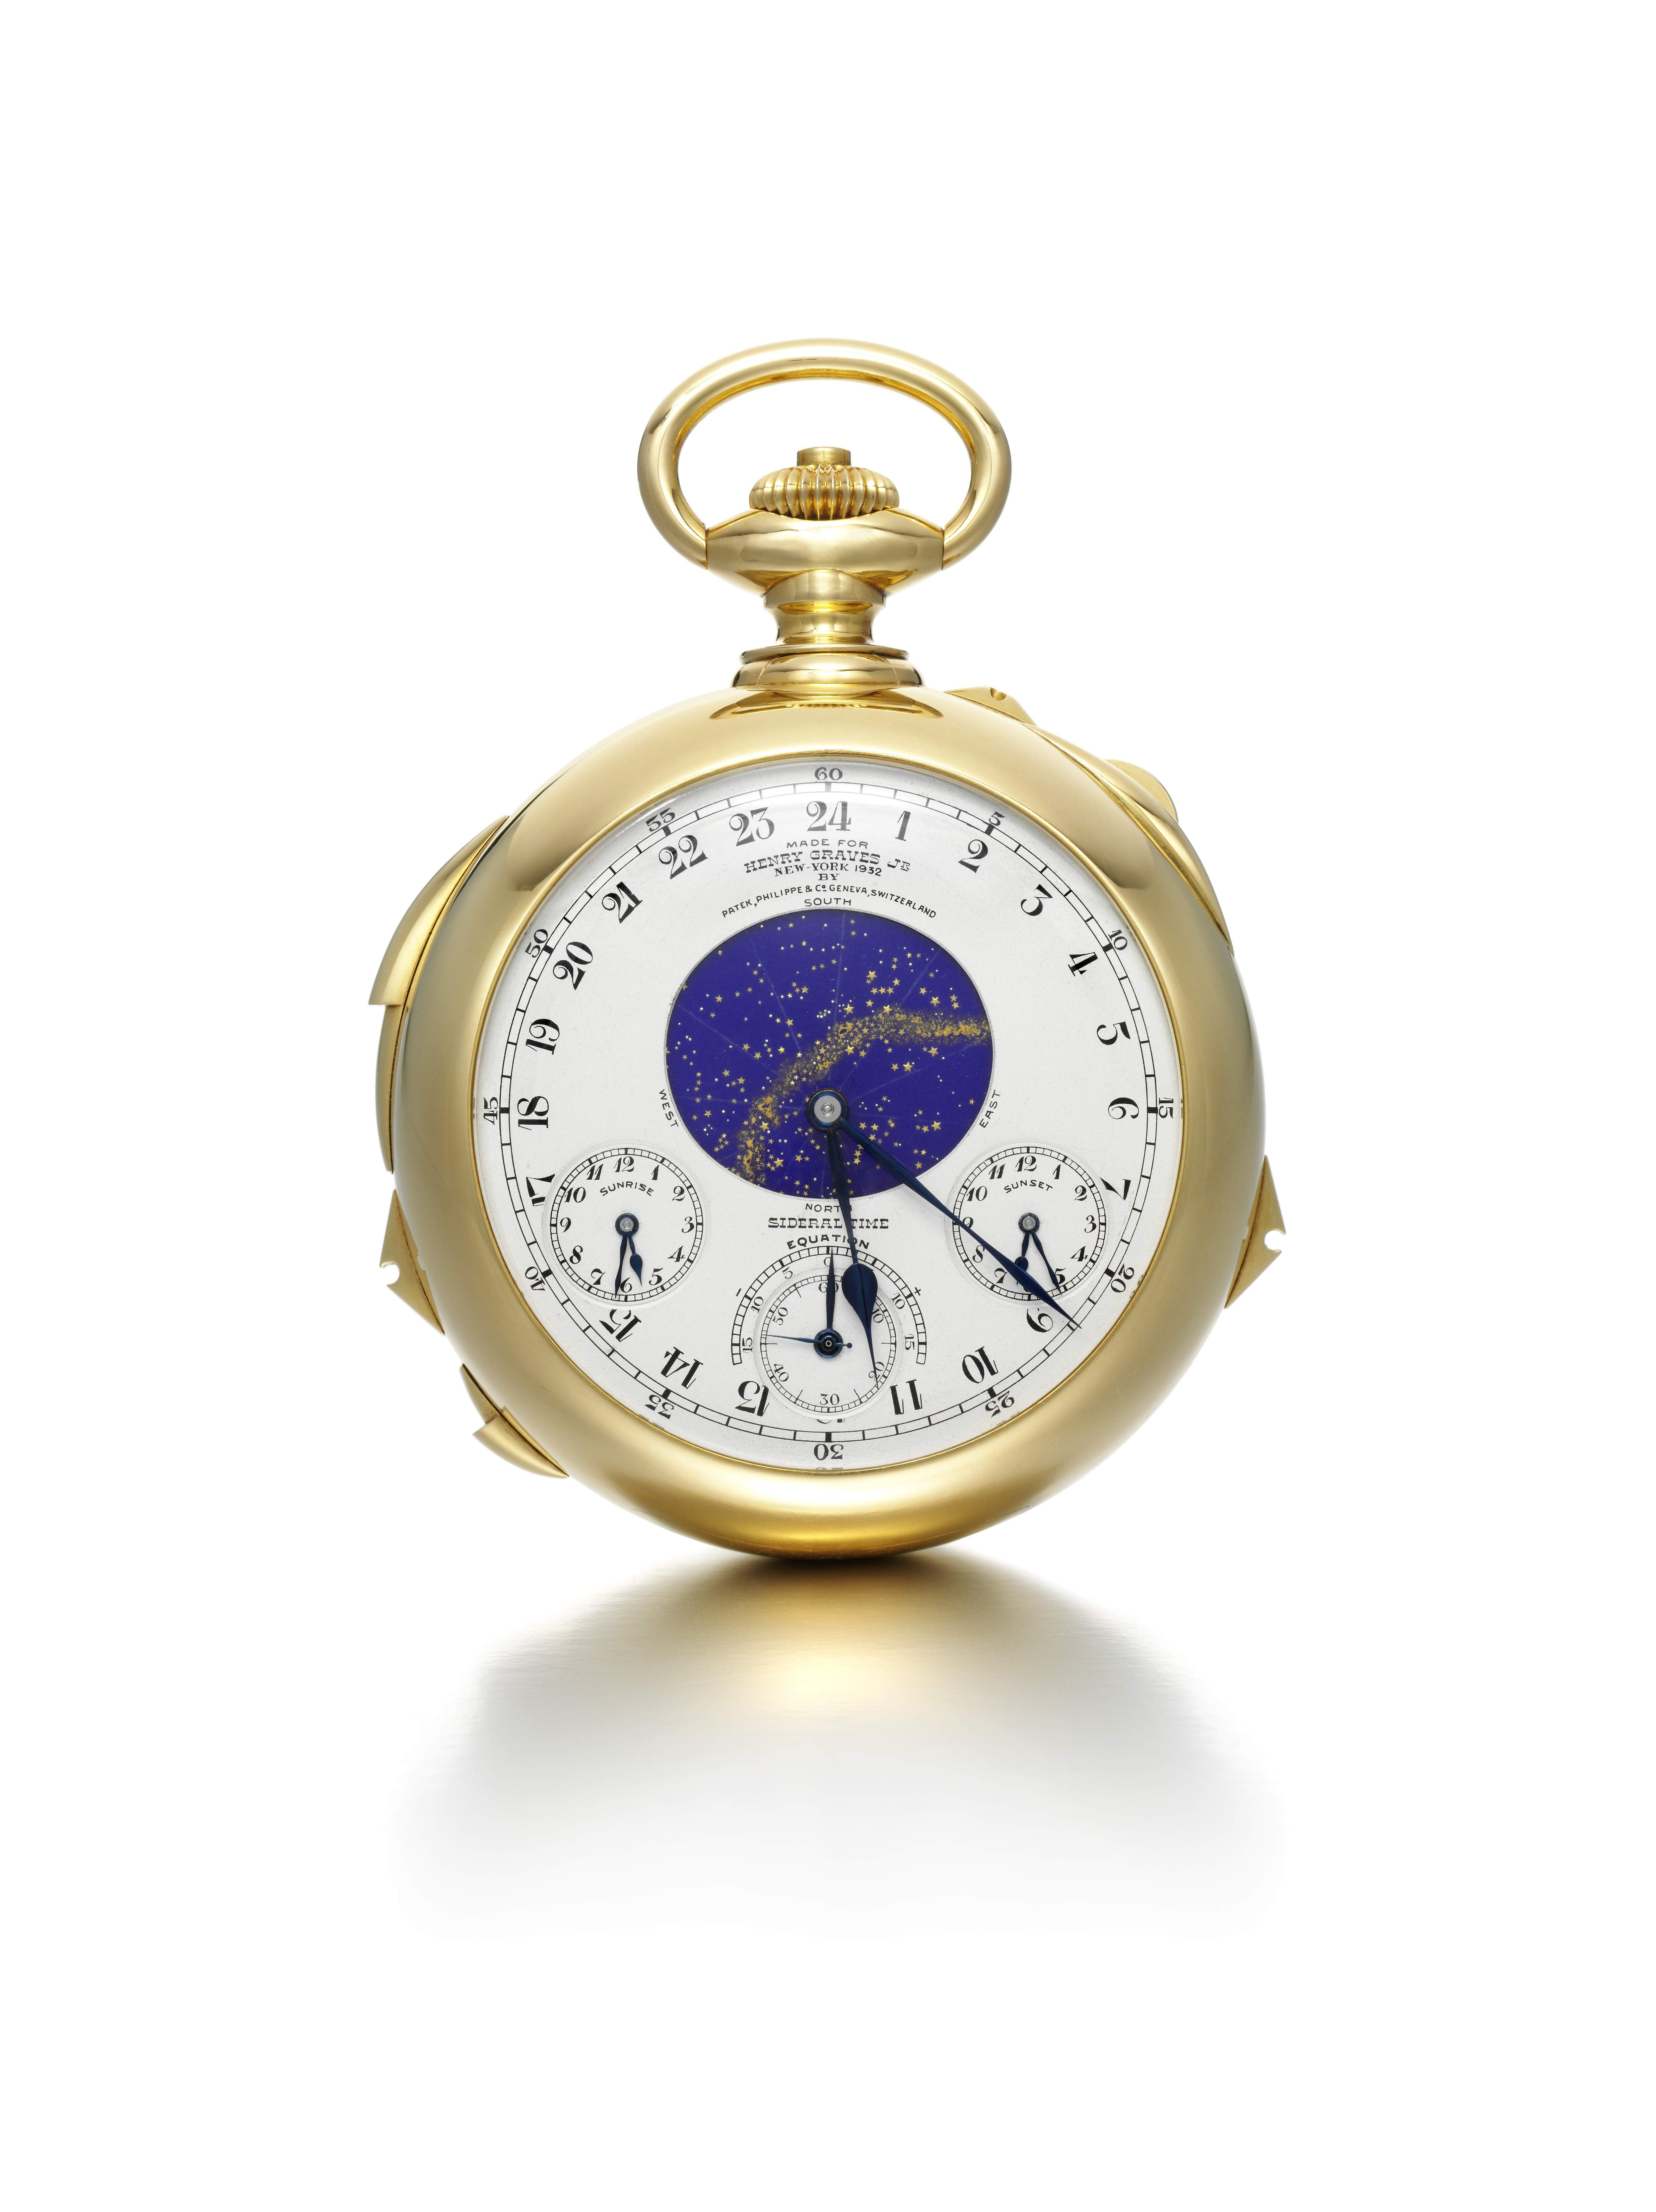 Patek phillipes supercomplication